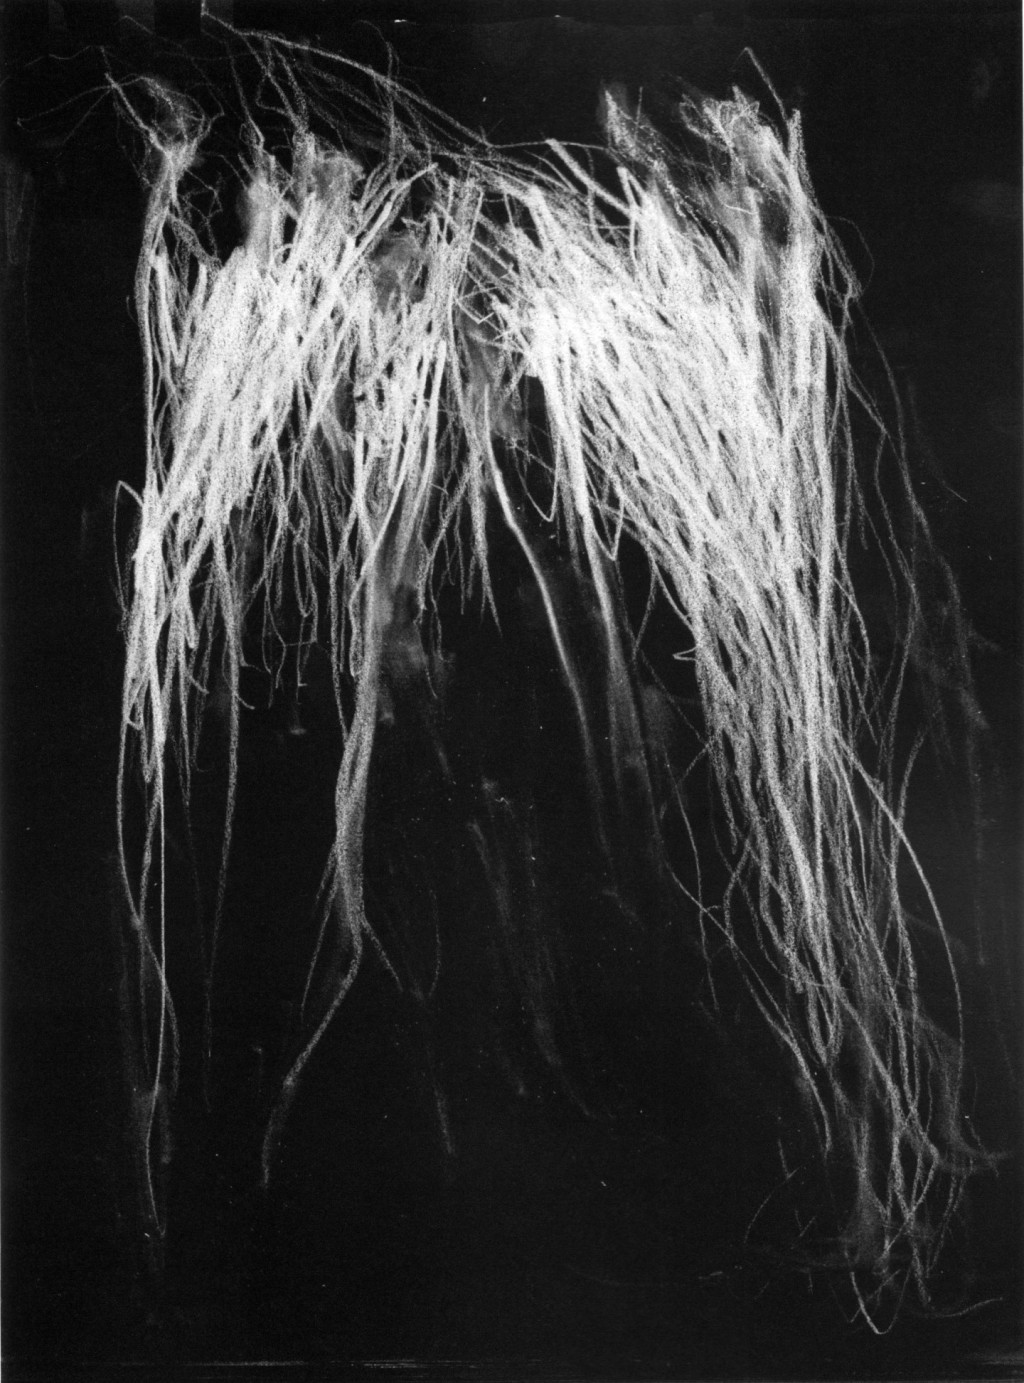 blackmetal-cy-twombly-volume-1-Andrew-McLeod